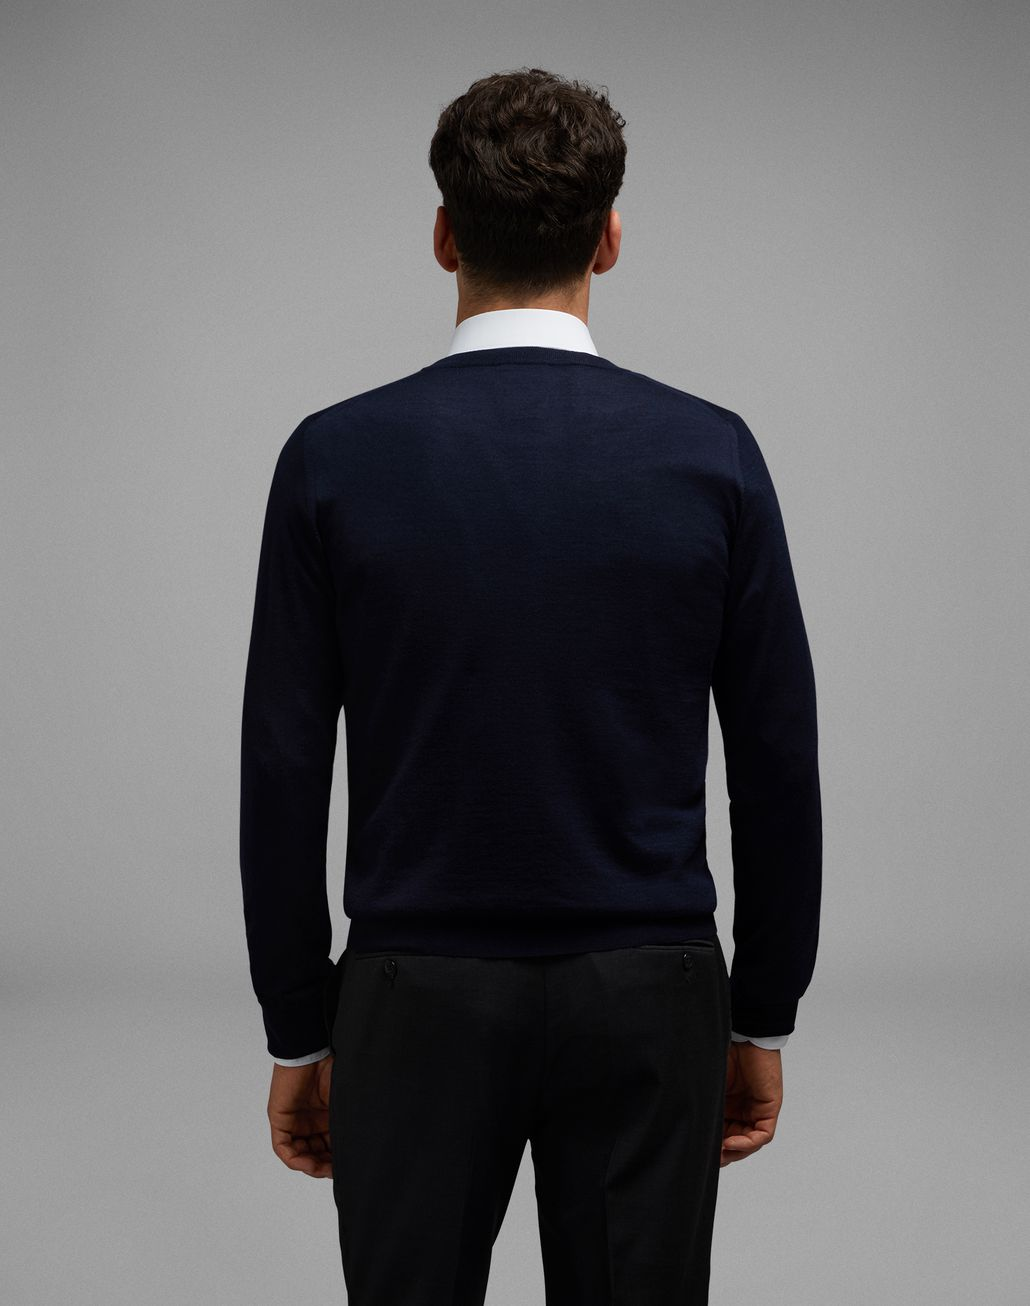 BRIONI 'Essential' Navy Blue Crew-Neck Sweater Knitwear [*** pickupInStoreShippingNotGuaranteed_info ***] d